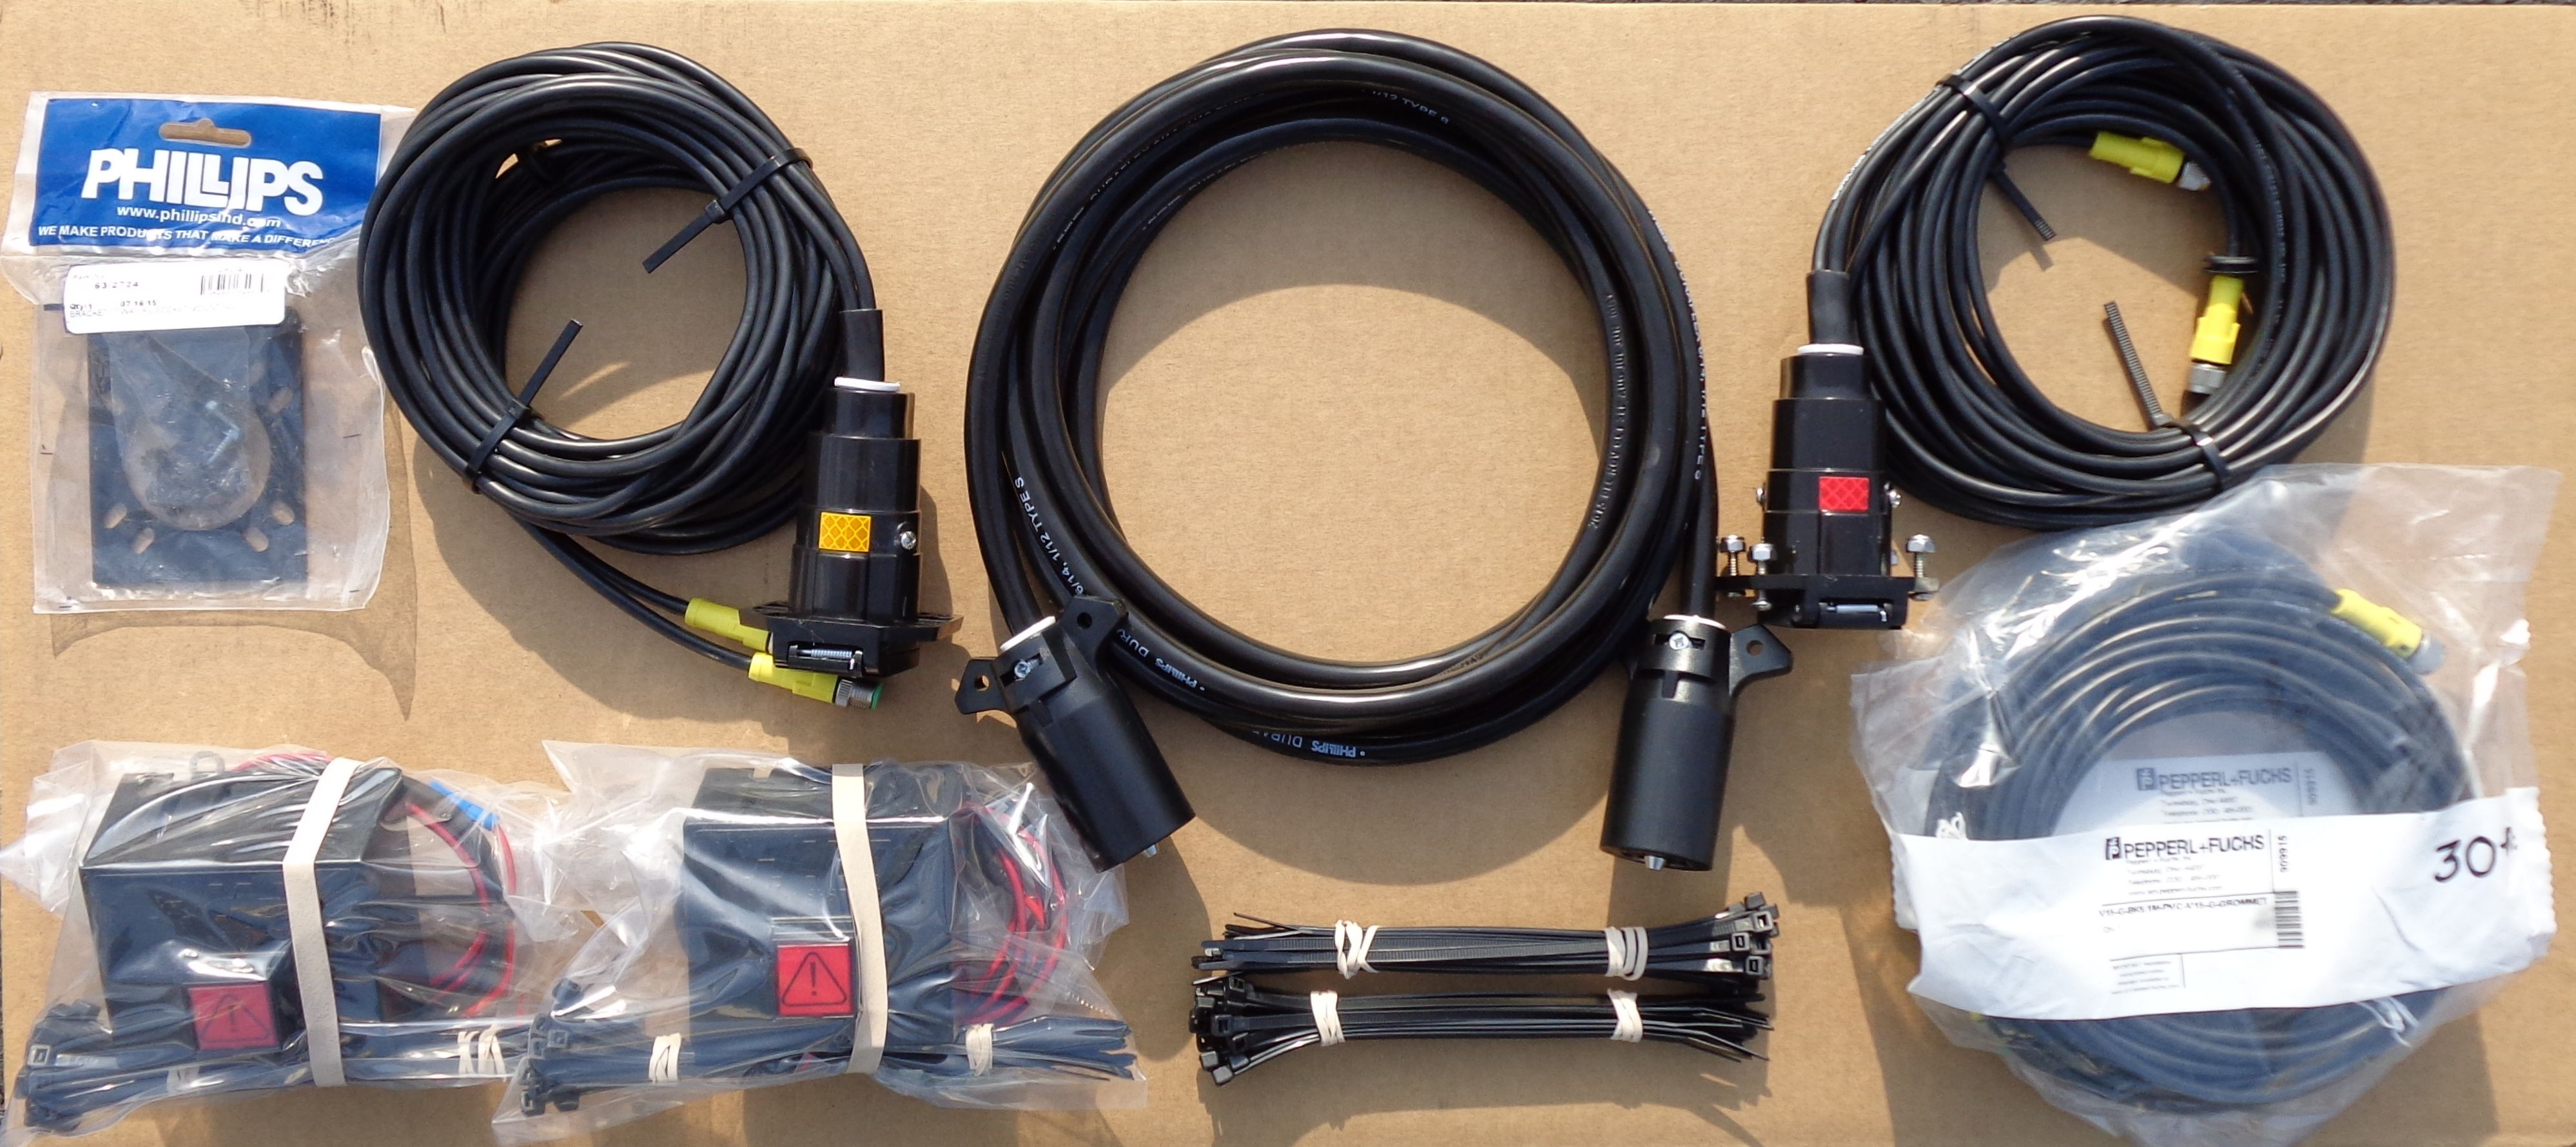 HTS Systems' HTS-30D-2 semi tractor trailer electrical harness for on trailer plugs, trailer hitch harness, trailer mounting brackets, trailer generator, trailer fuses, trailer brakes,